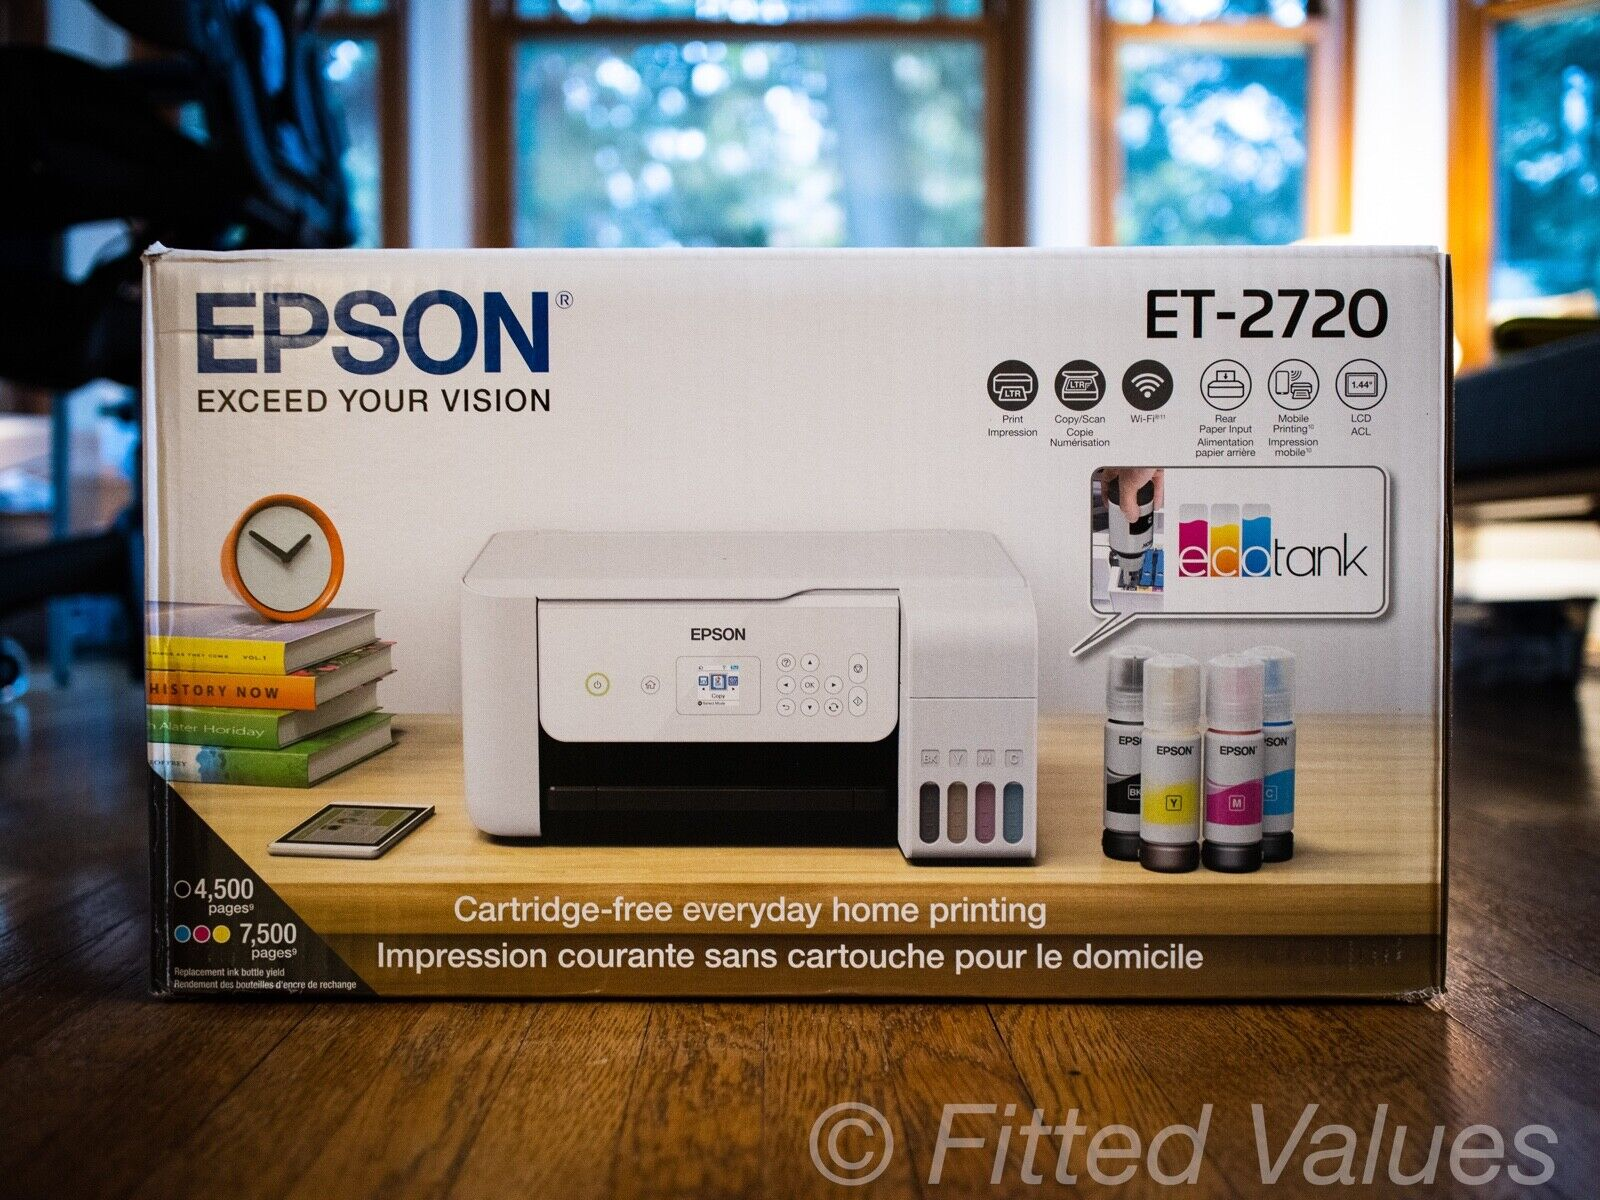 Epson EcoTank ET-2720 All-In-One Supertank Color Printer (White) - NEW SHIPS NOW. Buy it now for 263.88